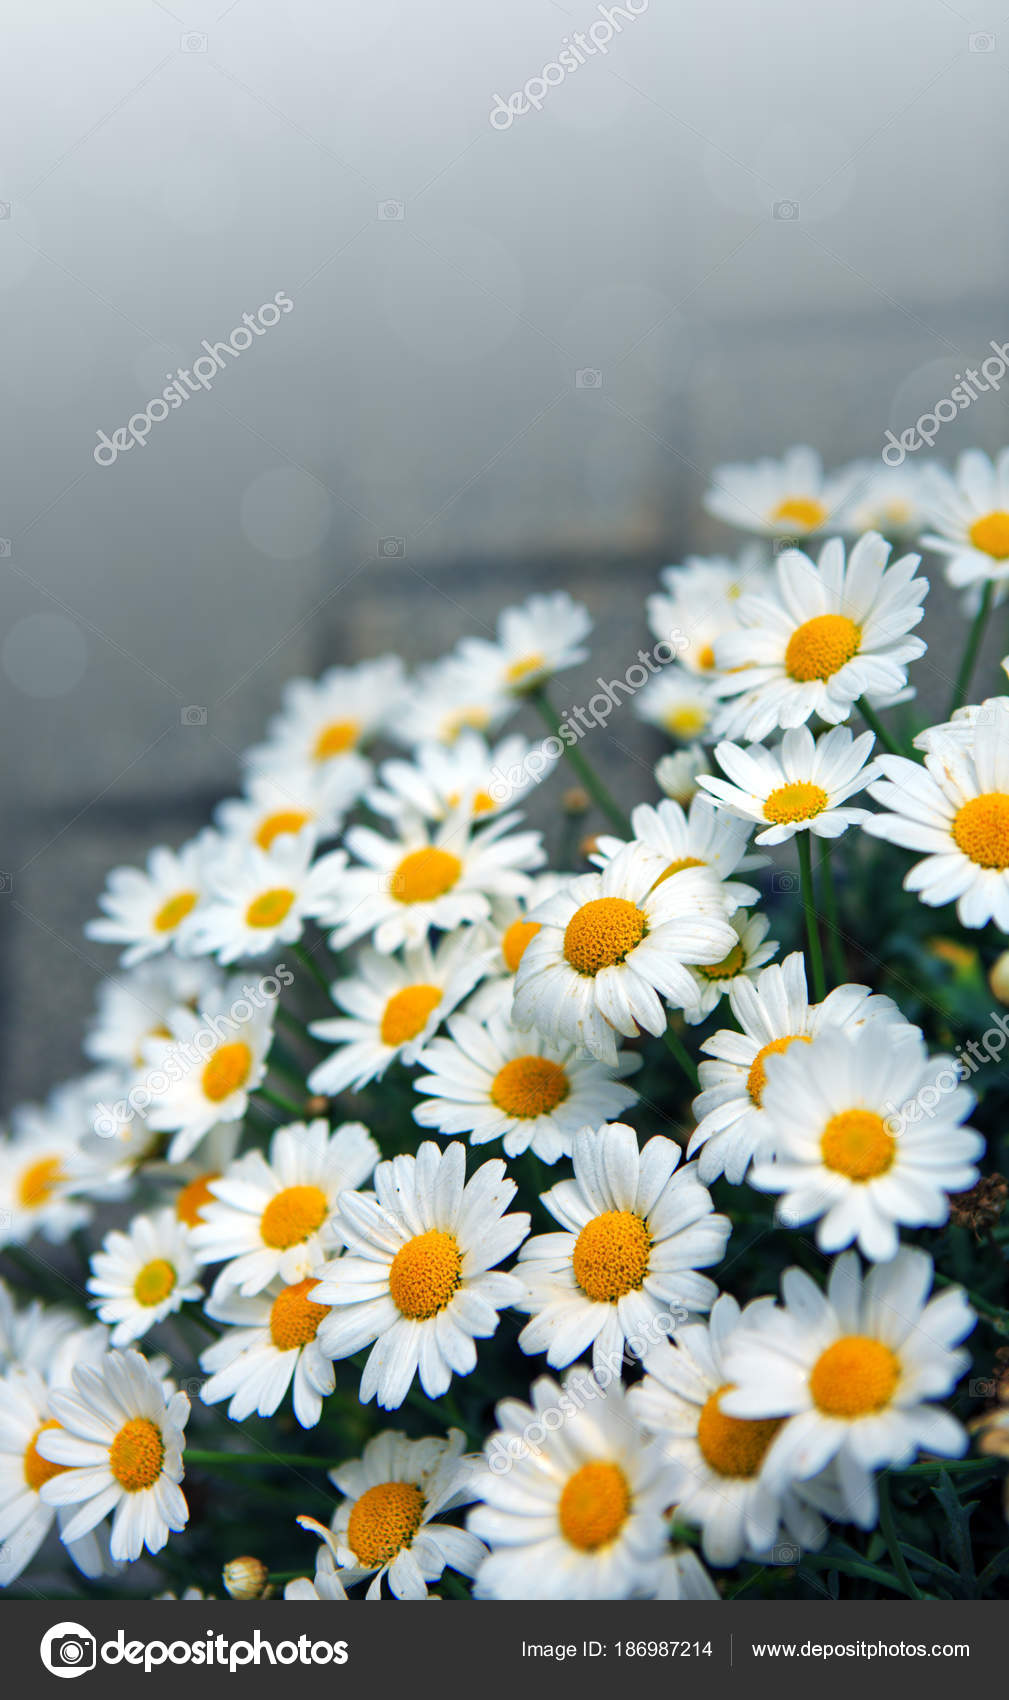 White daisies flowers in bright sun light stock photo swkunst daisy flowers backgroundcro of beautiful white daisies flowers isolated on gray background photo by swkunst izmirmasajfo